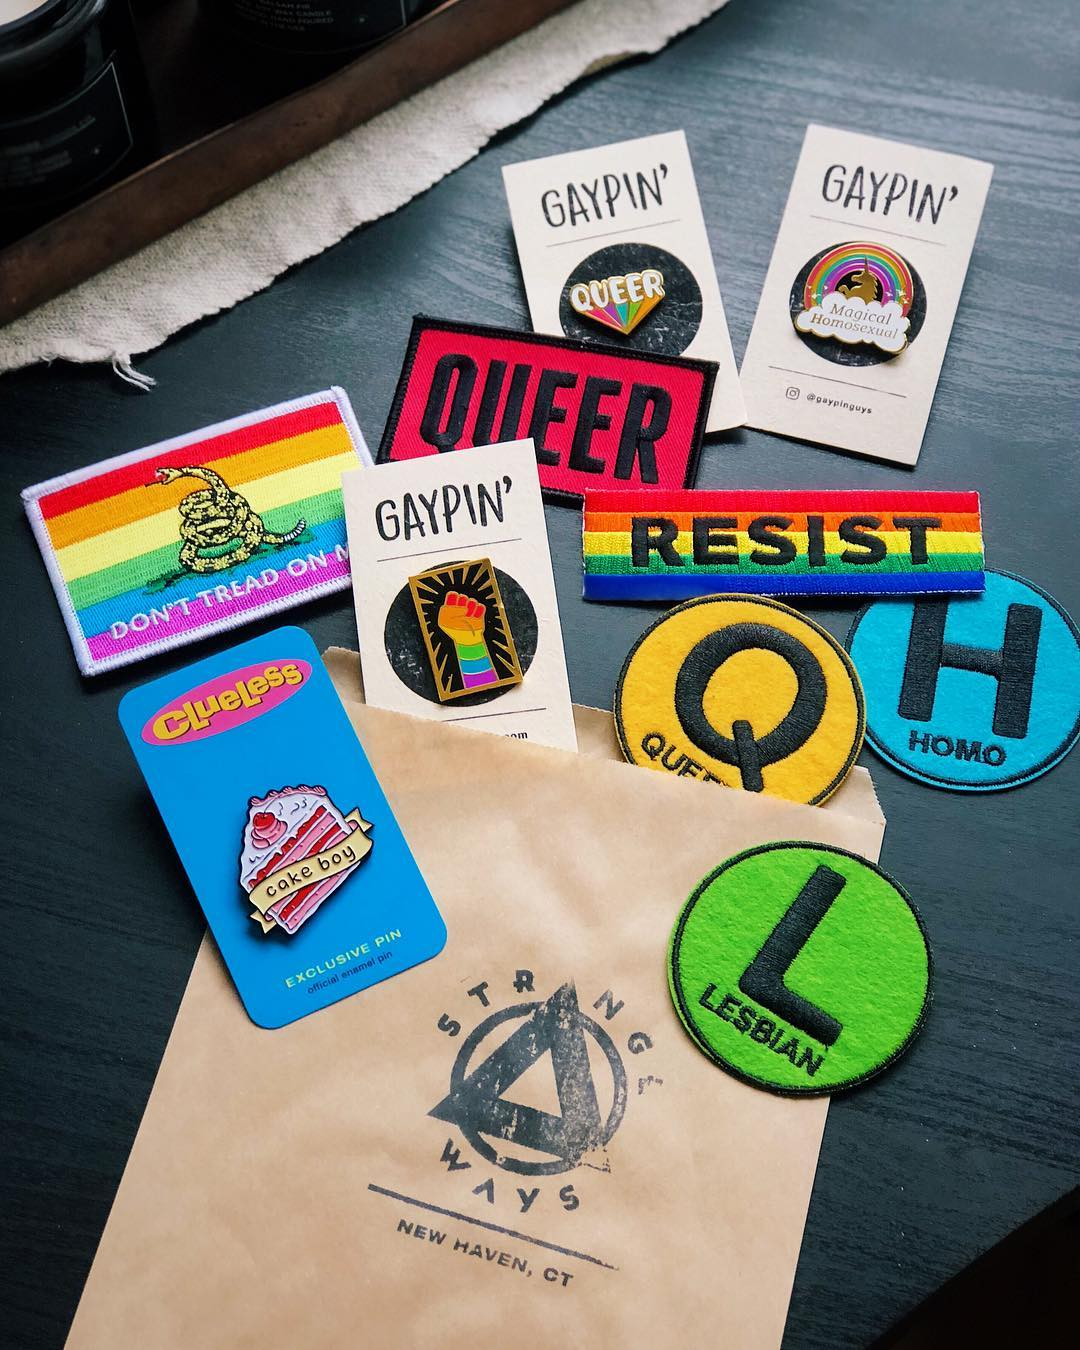 07b2685245b Shop LGBT, queer, and gay pride pins, patches, ...